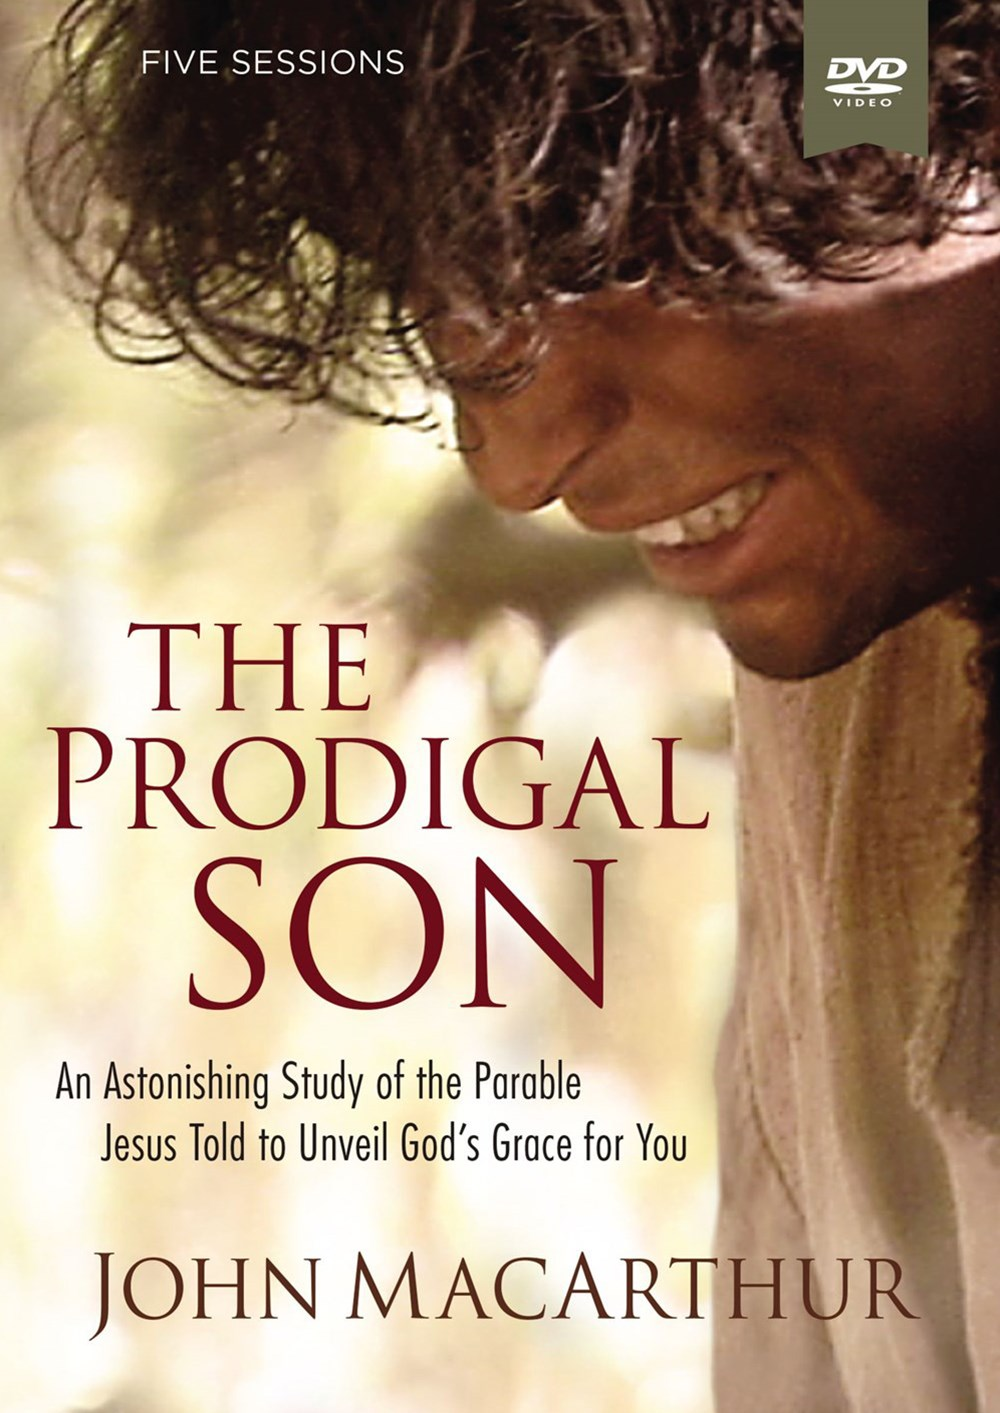 The Prodigal Son: A DVD Study: An Astonishing Study of the Parable JesusTold to Unveil God's Grace for You